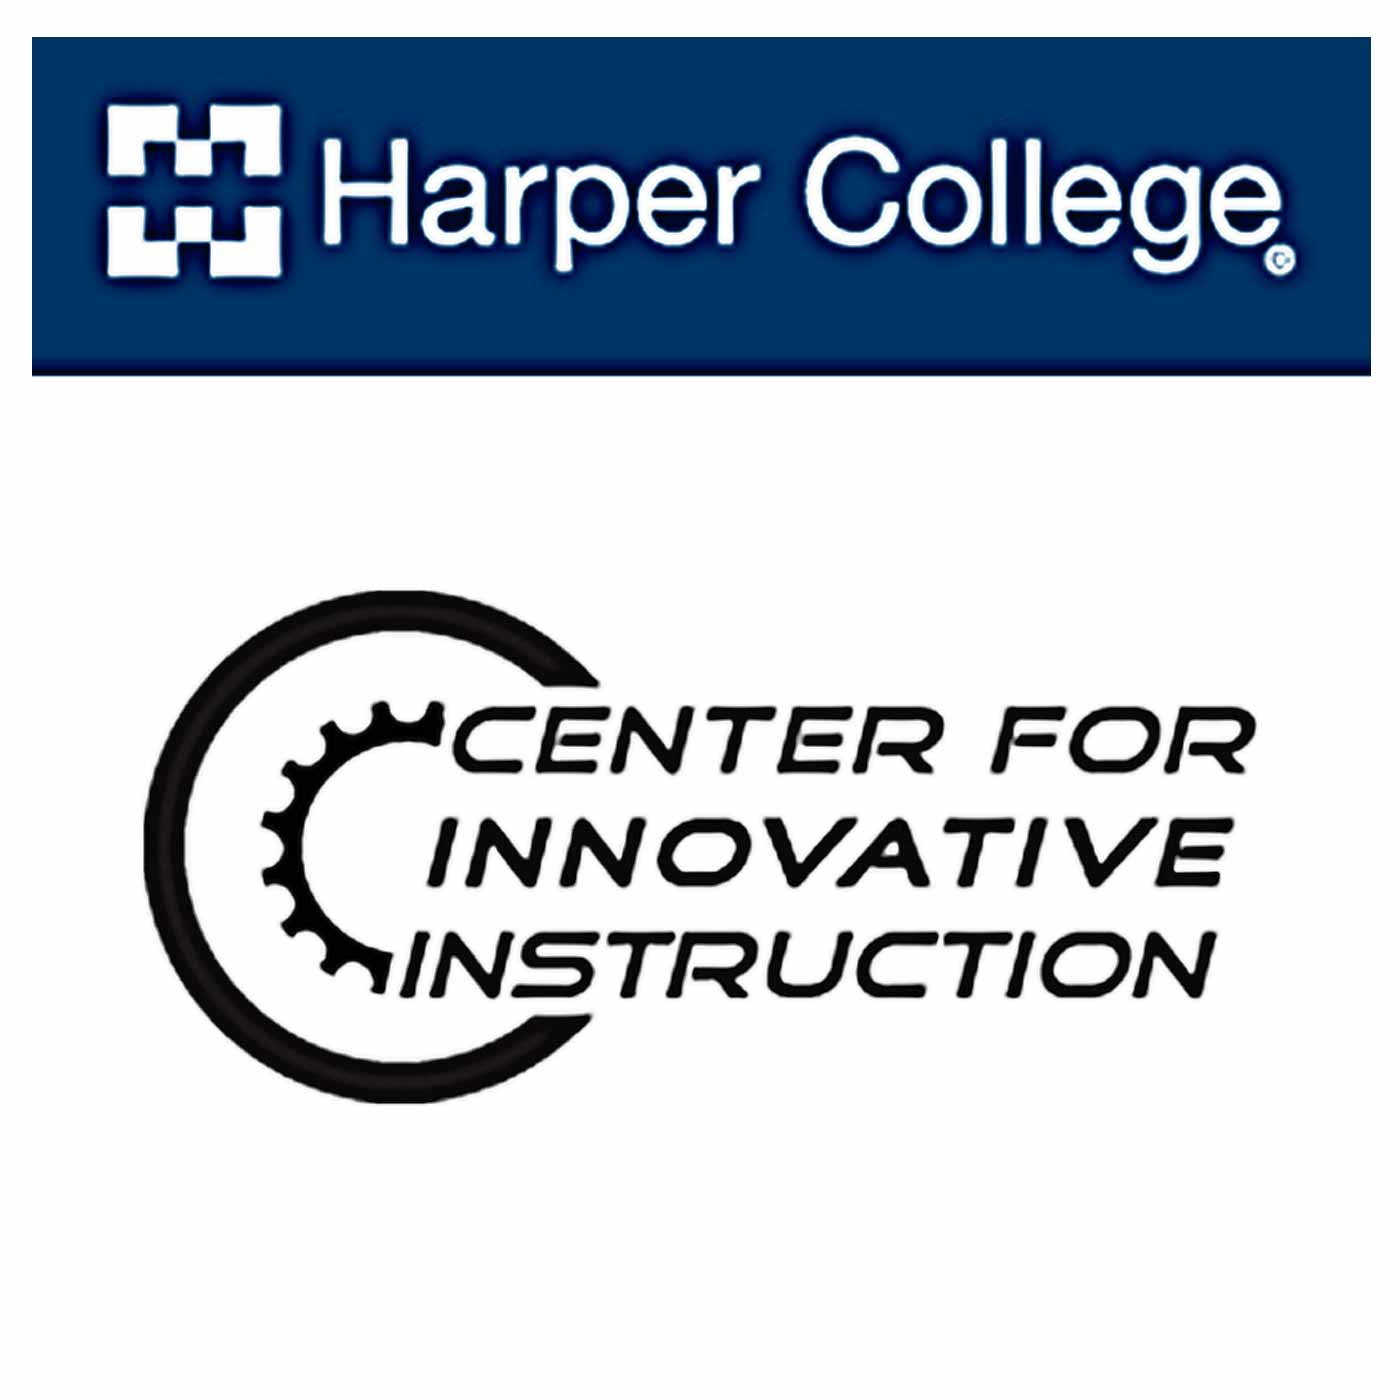 Harper College - Center for Innovative Instruction: Kurt Hemmer, Jim Gramlich & Tom Knoff